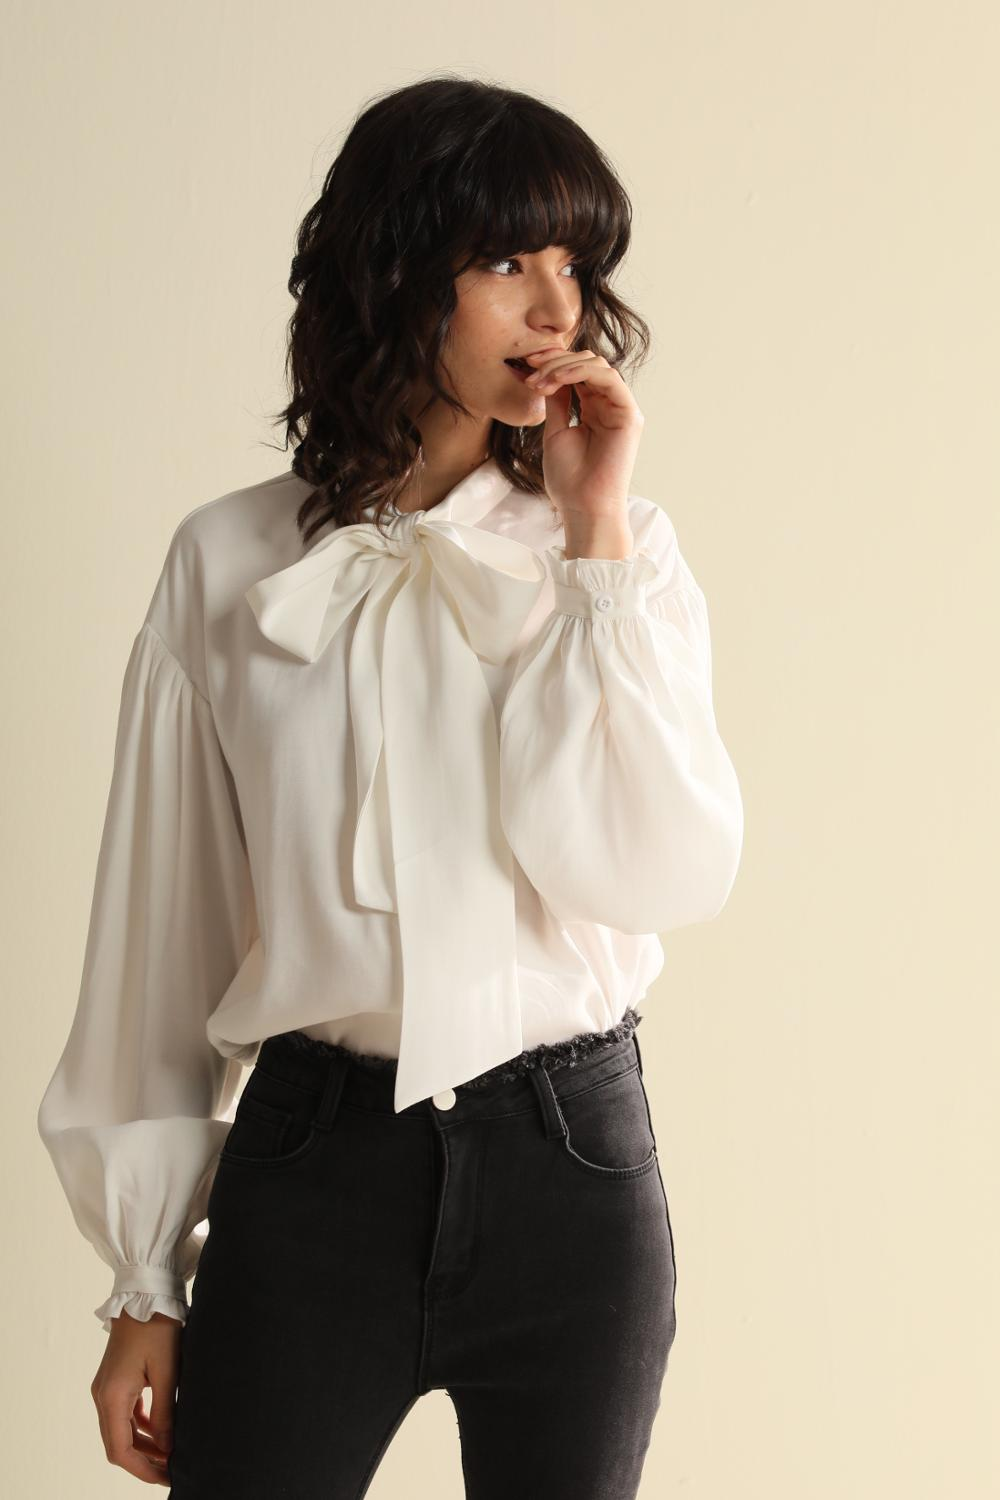 CMAZ 2020 Spring And Summer Women's Palace Style Sweet Bow Tie Long Sleeve Female Shirts CMAZ19C7189